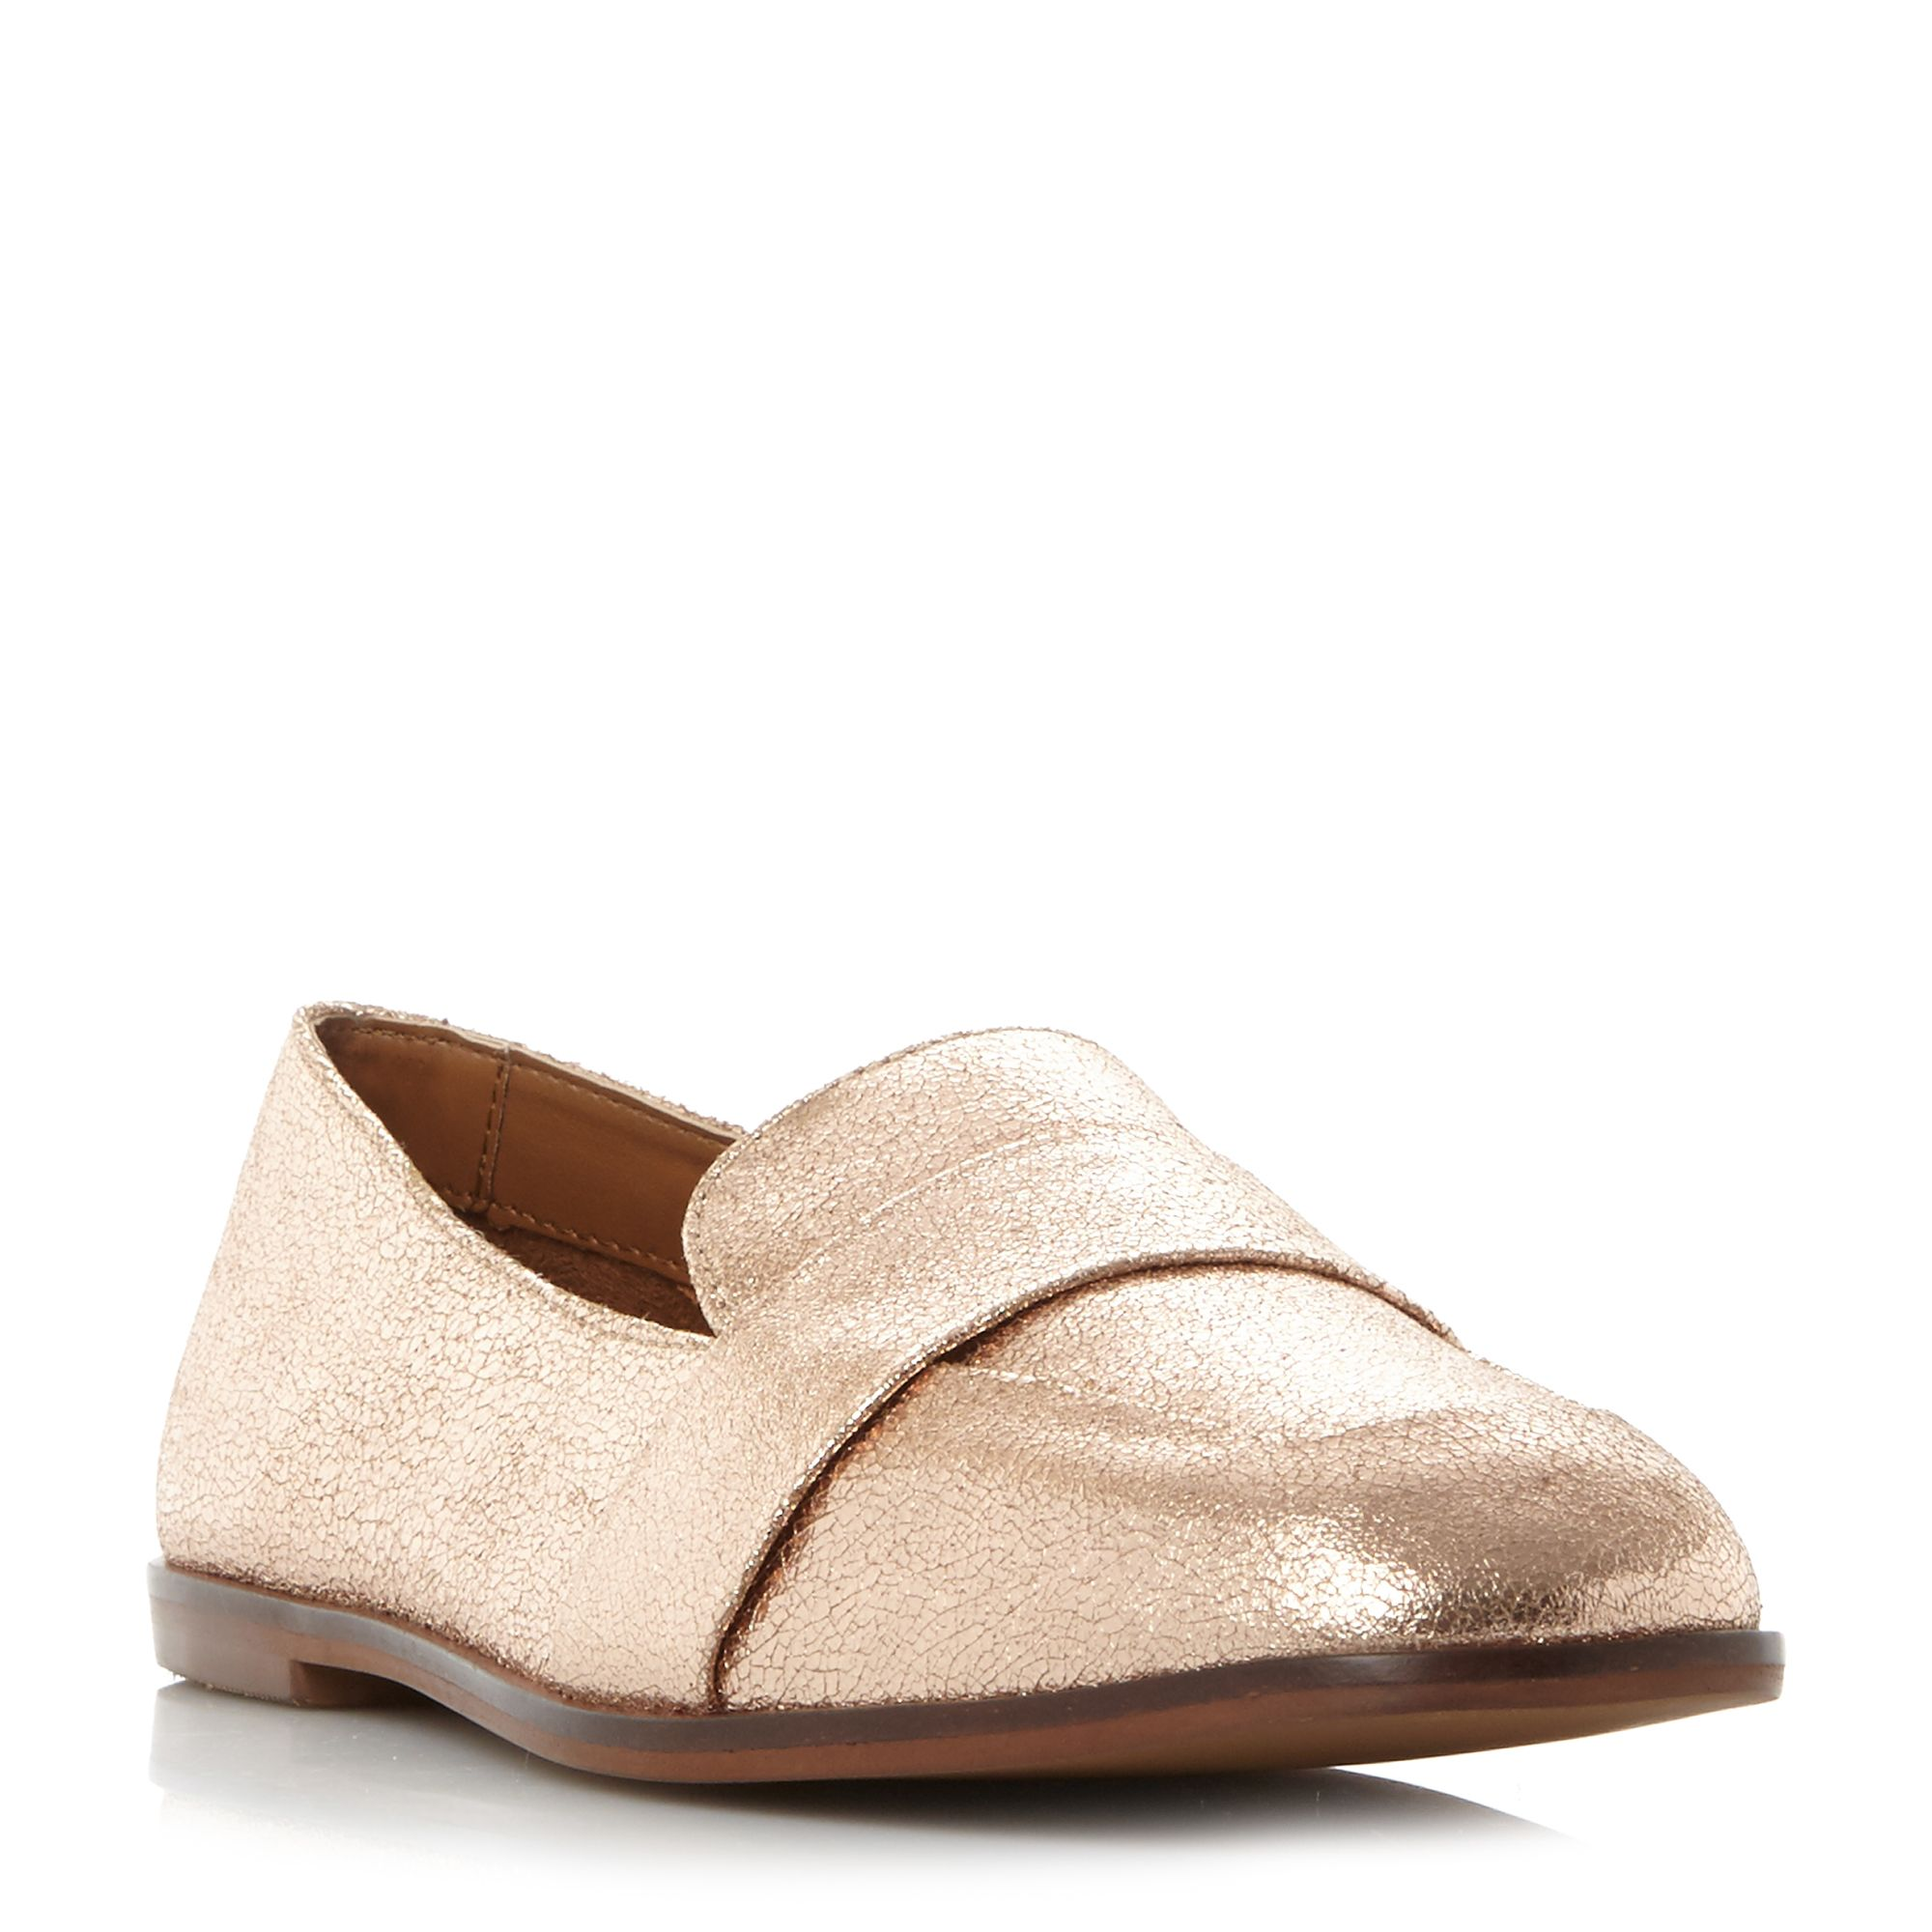 Kenneth Cole Glide Slide Metallic Loafer Shoes, Rose